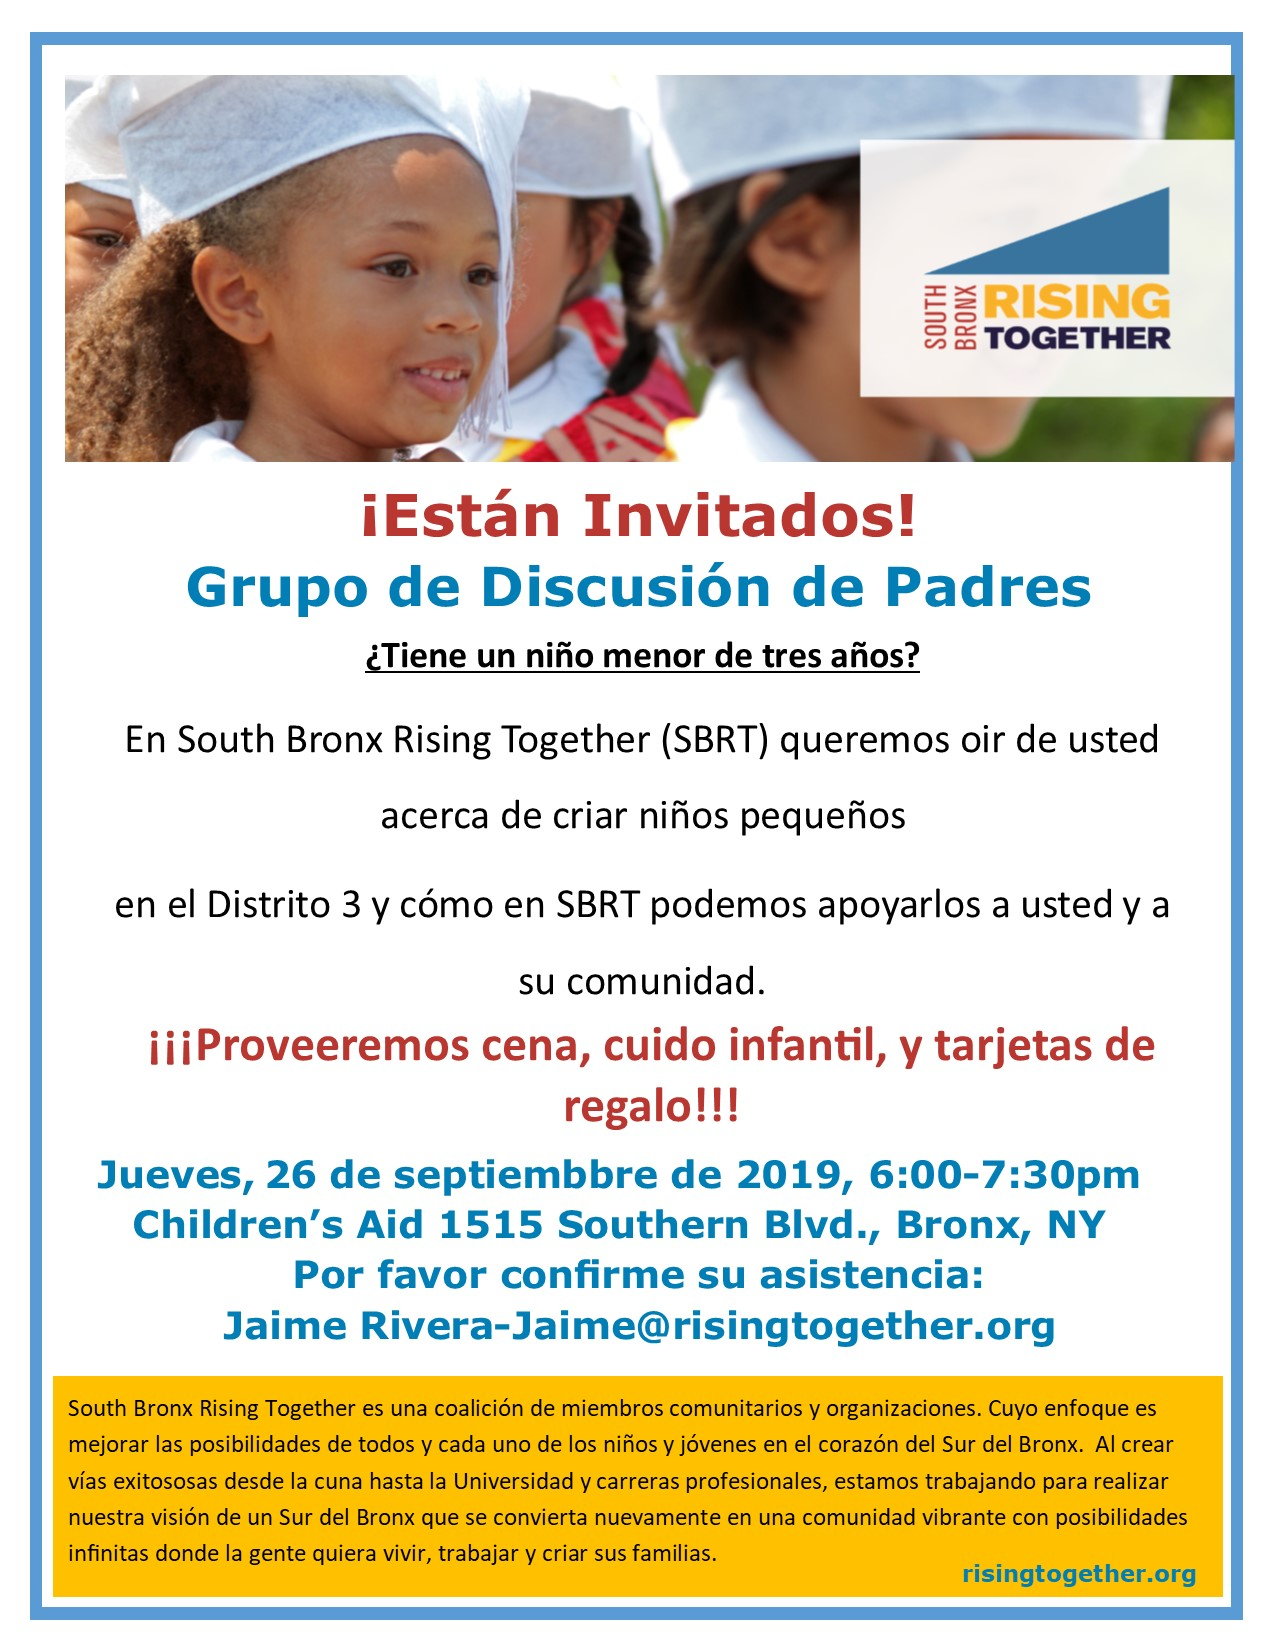 Parent Focus Group_Spanish 92619 JPEG - Jaime Rivera.jpg